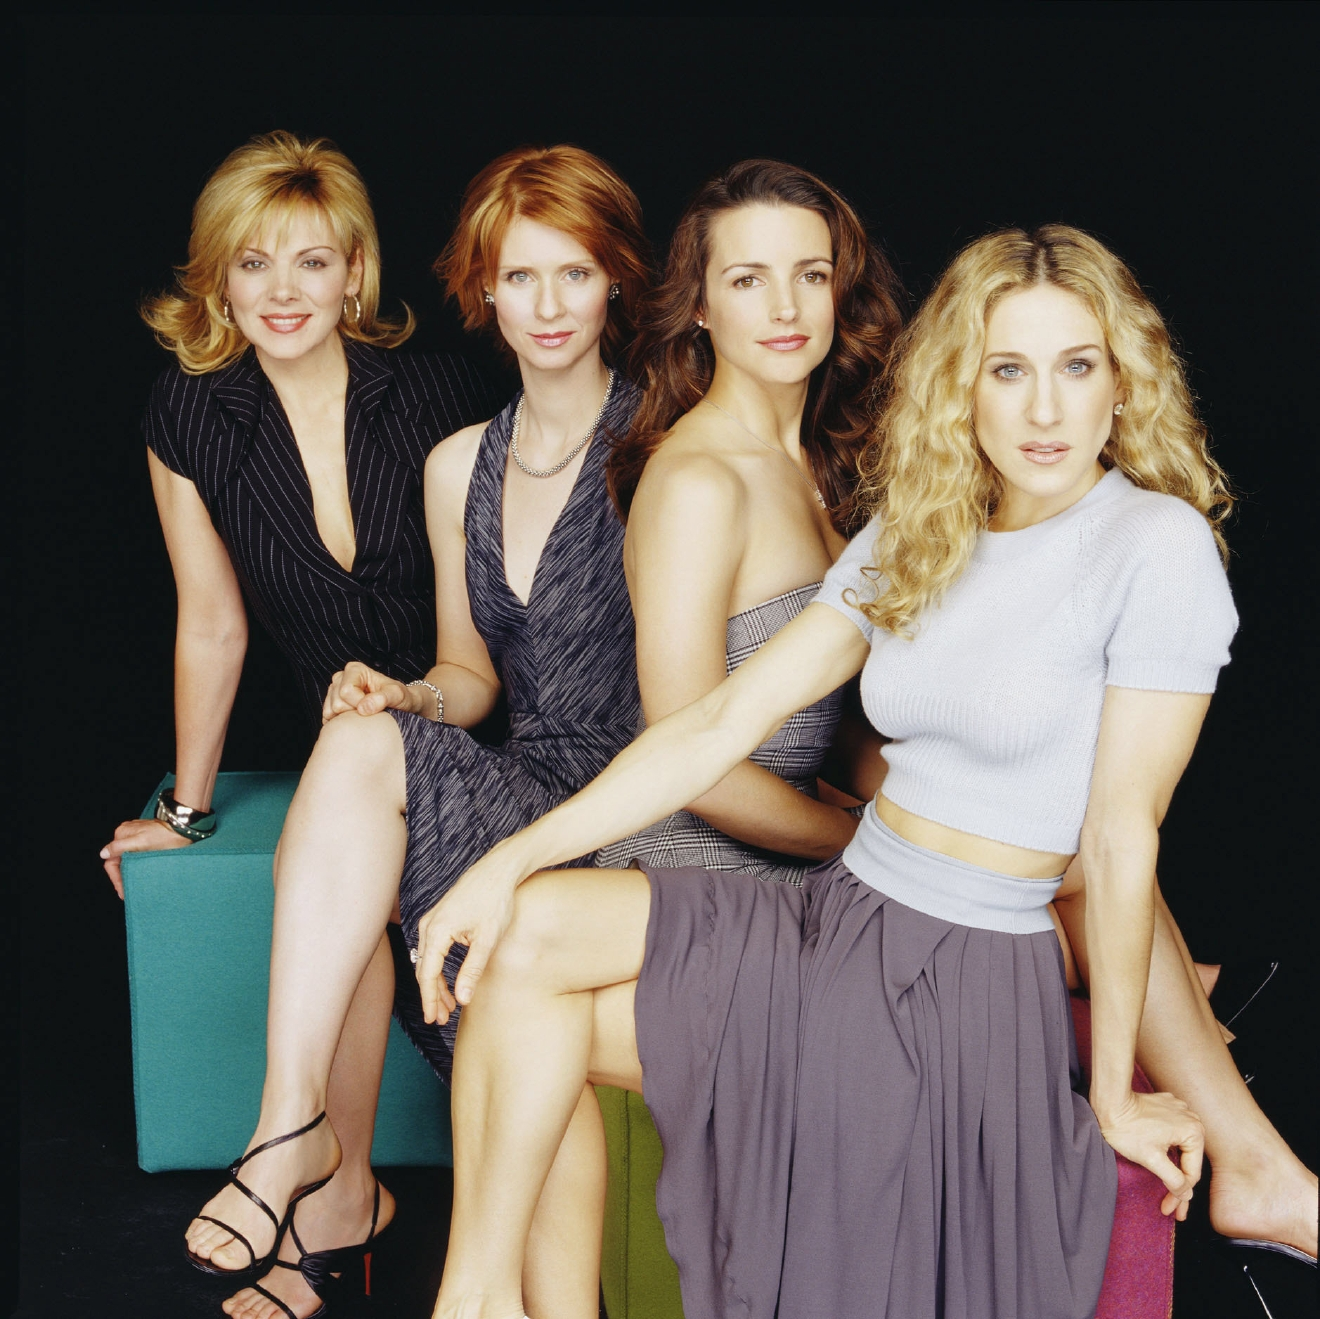 Still image from the HBO TV Series 'Sex and the City' - Season 4                                    Featuring: Sarah Jessica Parker, Kim Cattrall, Cynthia Nixon, Kristin Davis                  Where: New York City, New York, United States                  When: 14 Jun 2013                  Credit: WENN.com